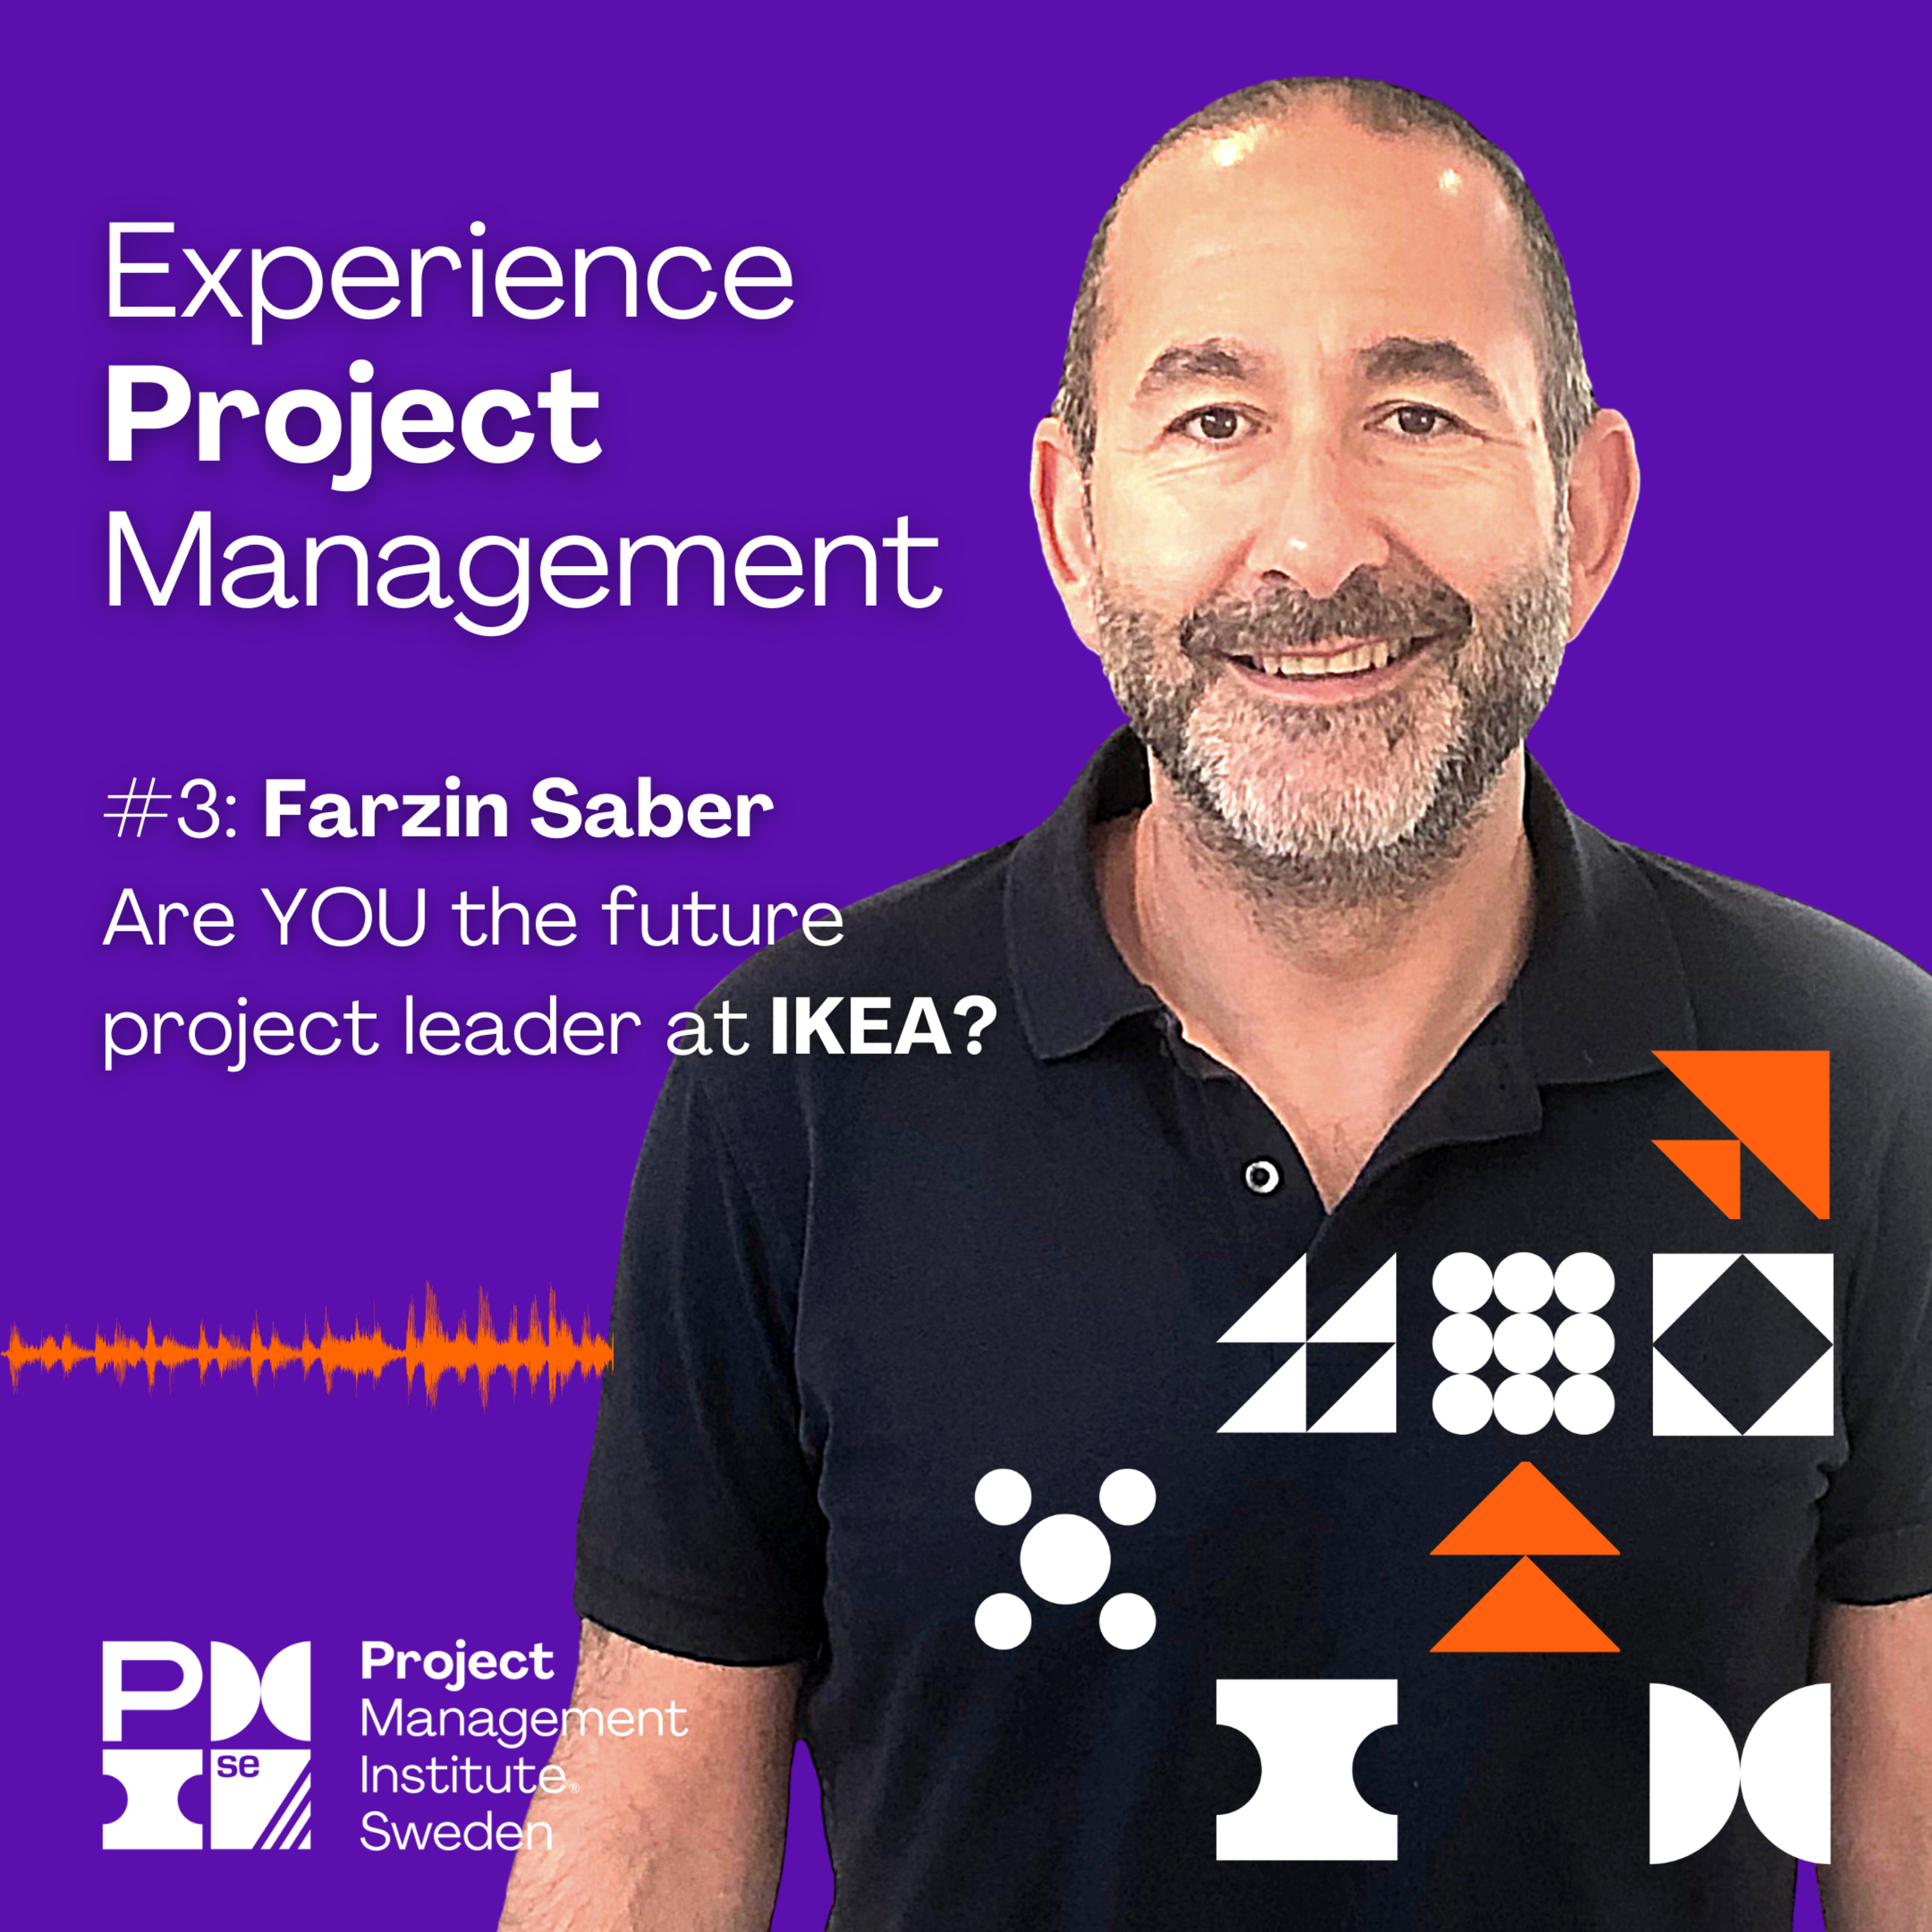 3. Farzin Saber - Are YOU the future project leader at IKEA?